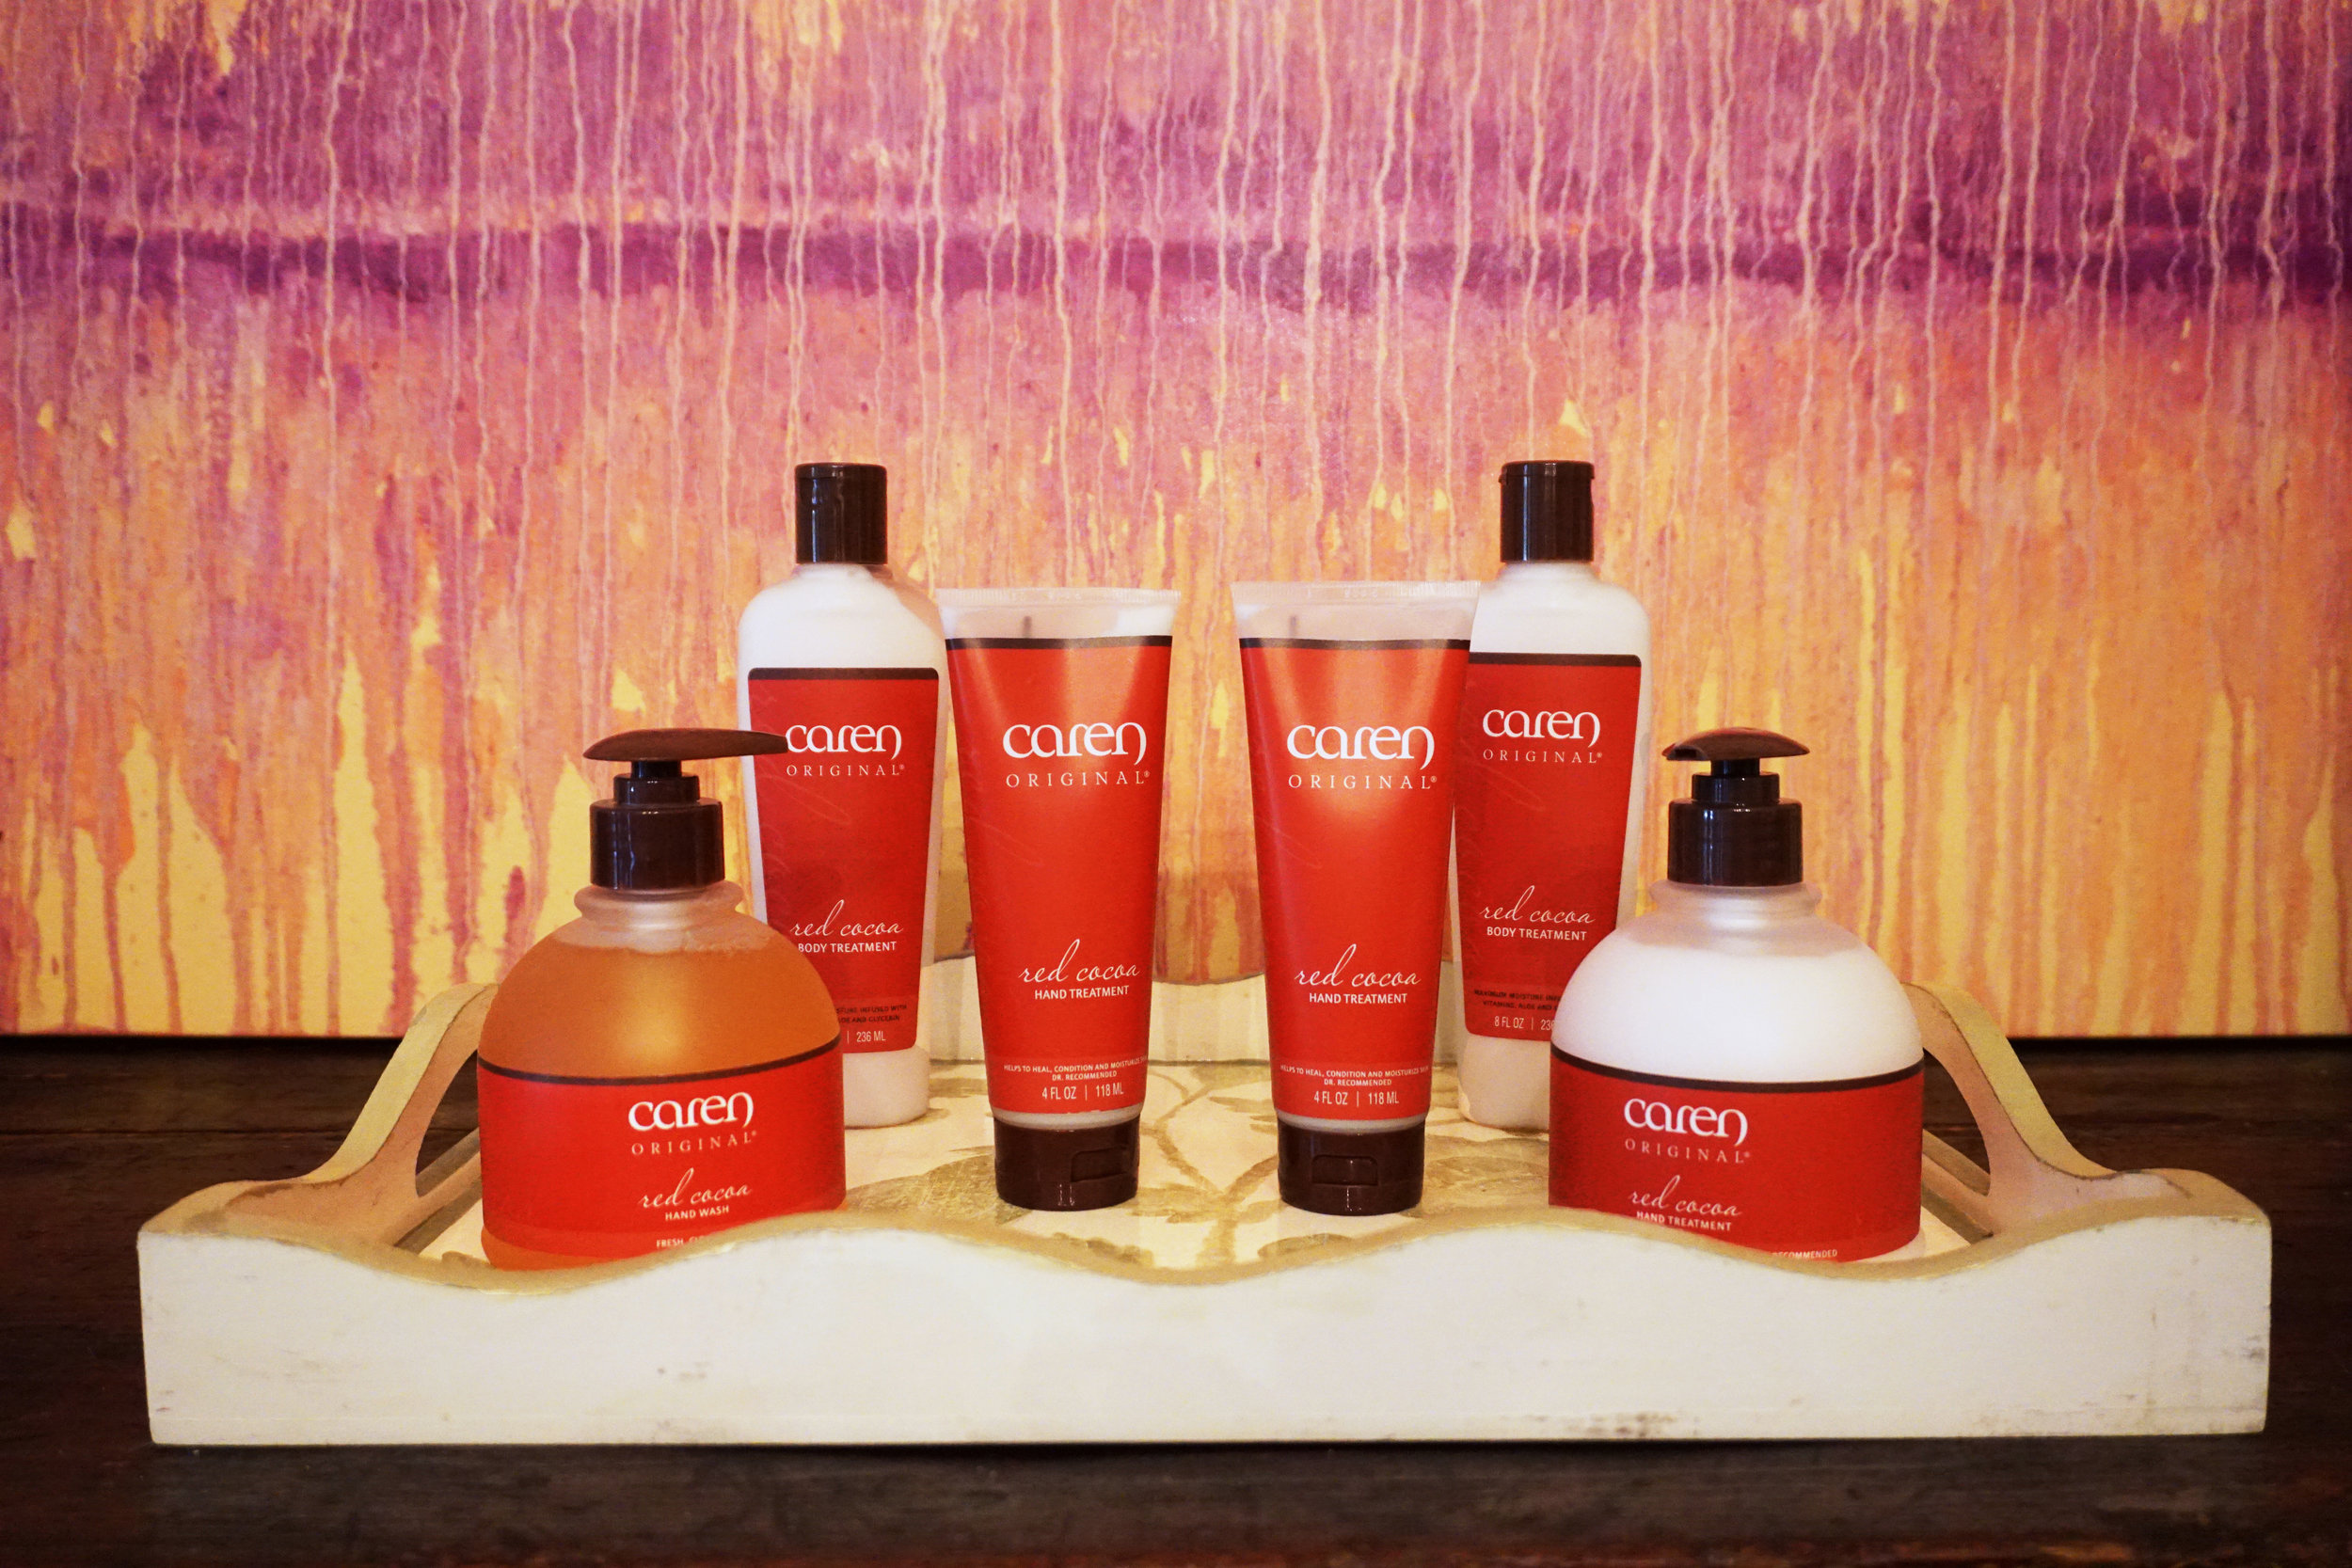 Caren Lotions   These skin care products restore, rejuvenate and replenish all skin types from head to toe. Caren products are also made in the USA and donate to help support organizations in the fight against Breast Cancer.